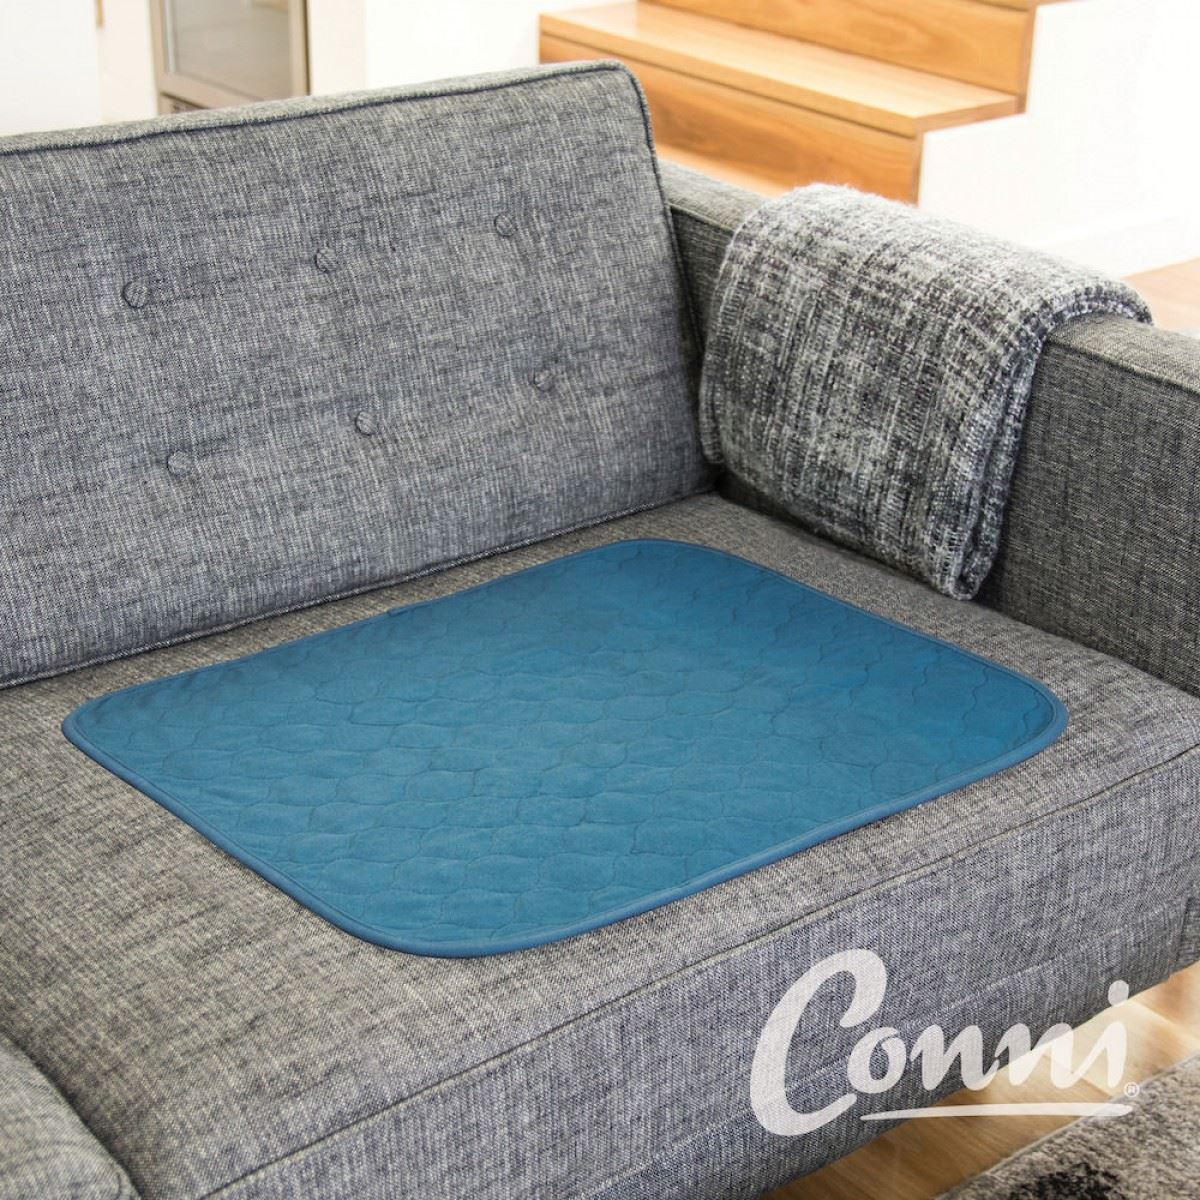 Picture of Conni Chair Pad